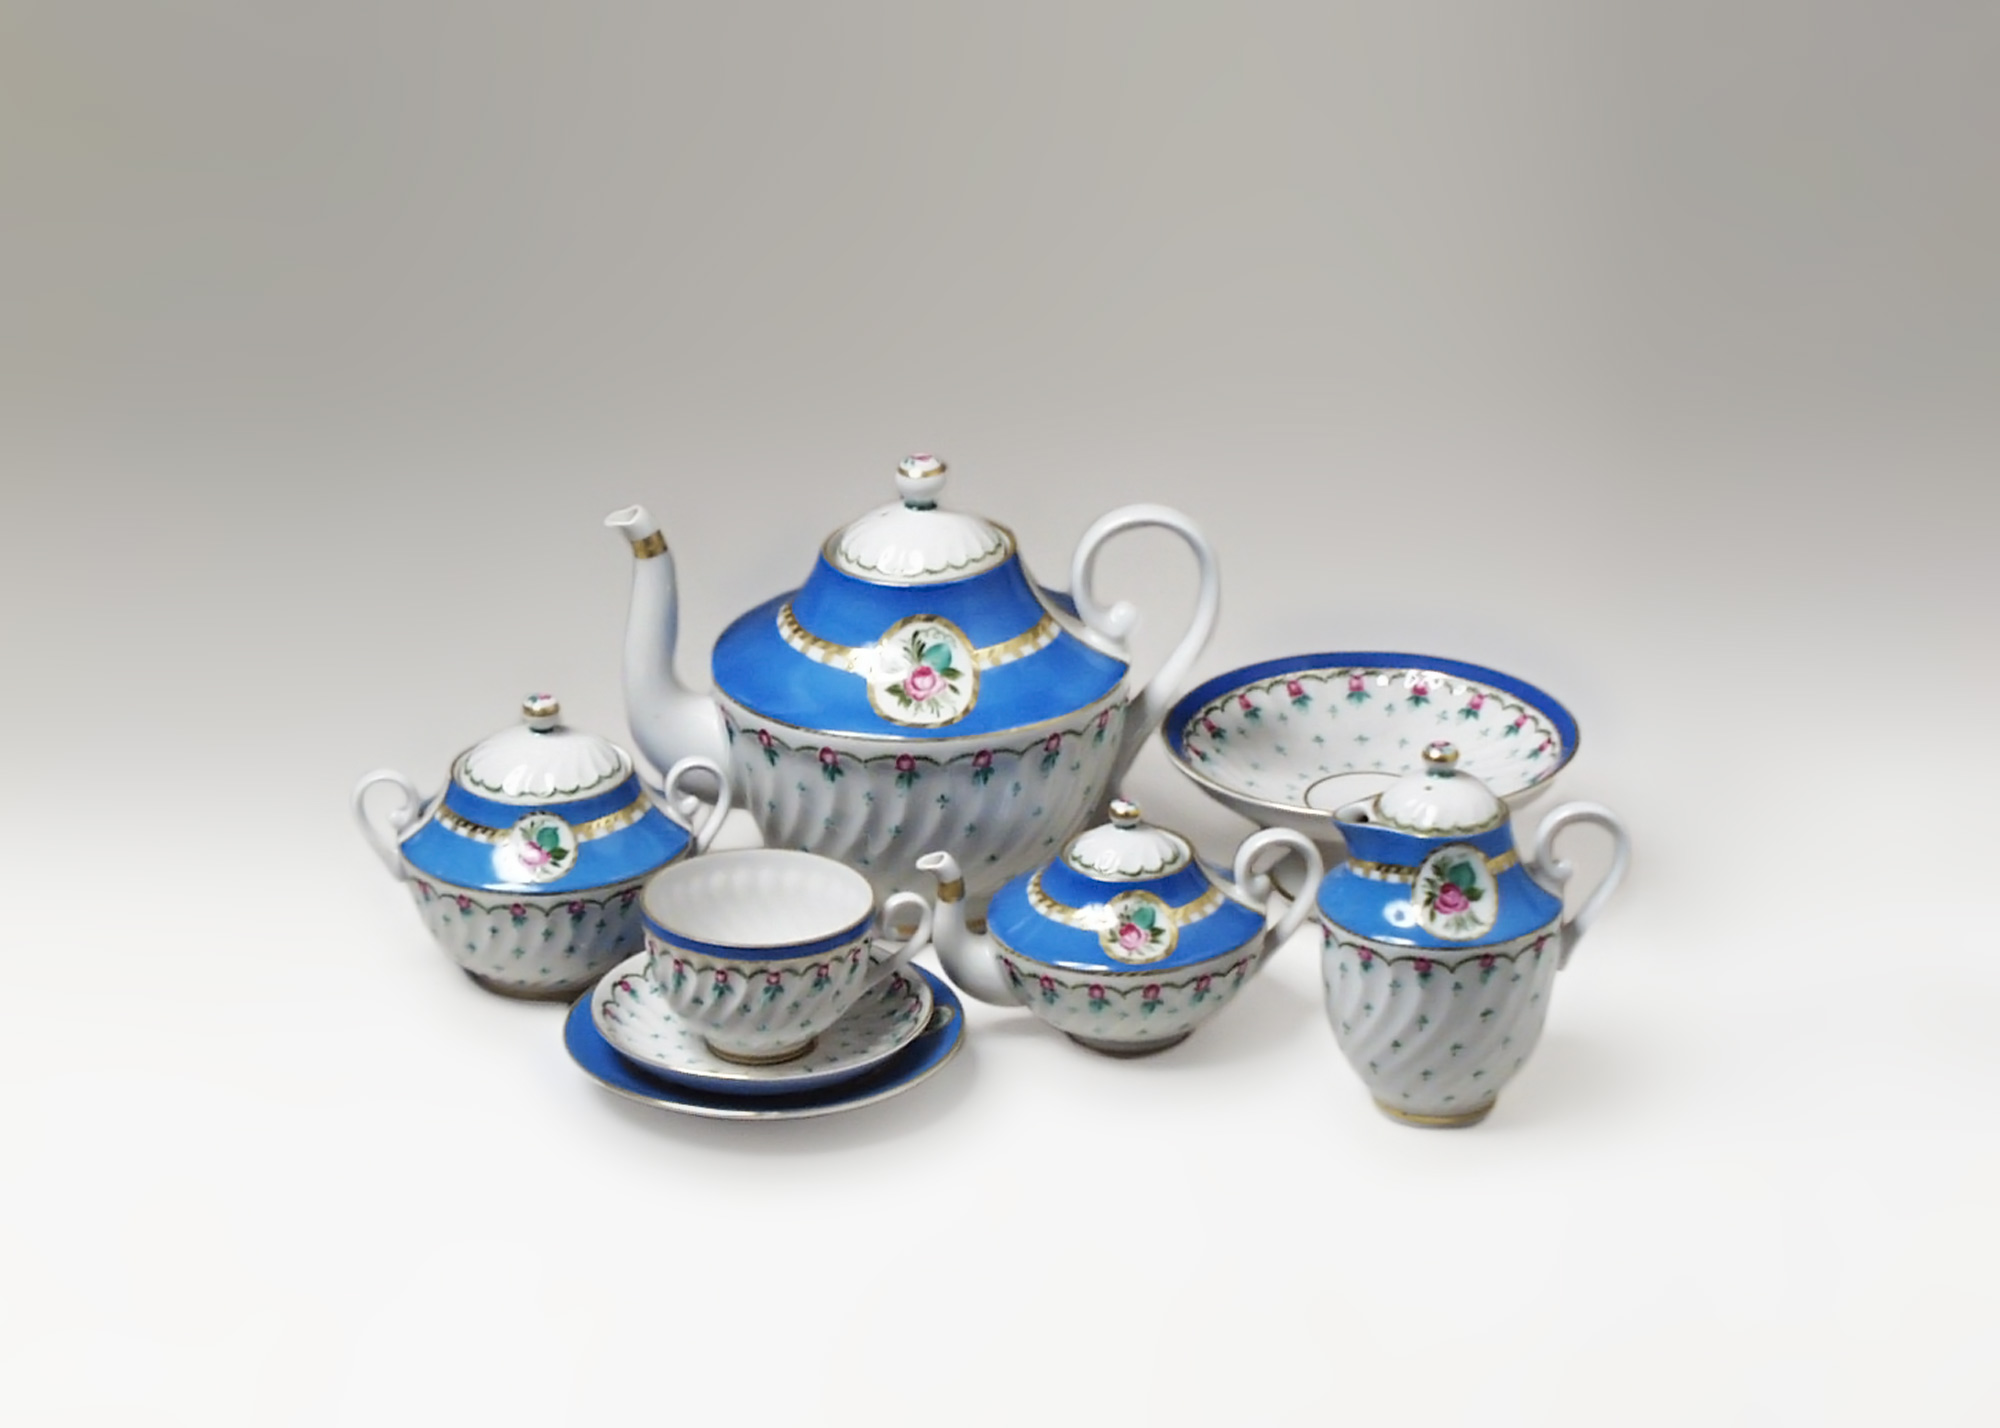 Buy Anastasia Tea Set, 23 piece at GoldenCockerel.com